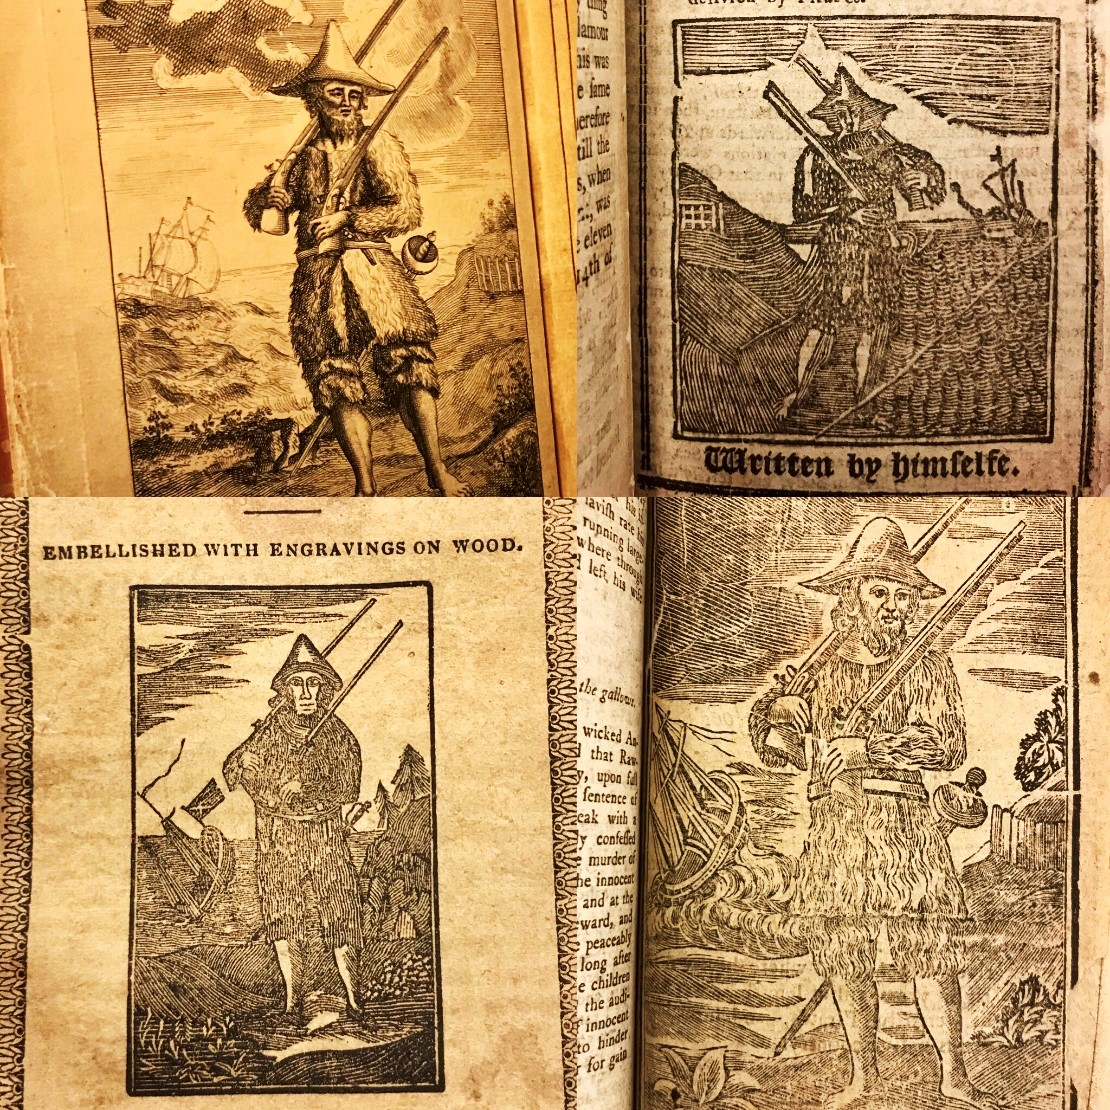 Portraits of Robinson Crusoe. John Pine's first edition frontispiece (C.30.f.6) is top left.  Later woodcuts from a variety of chapbooks can be seen to retain the composition.